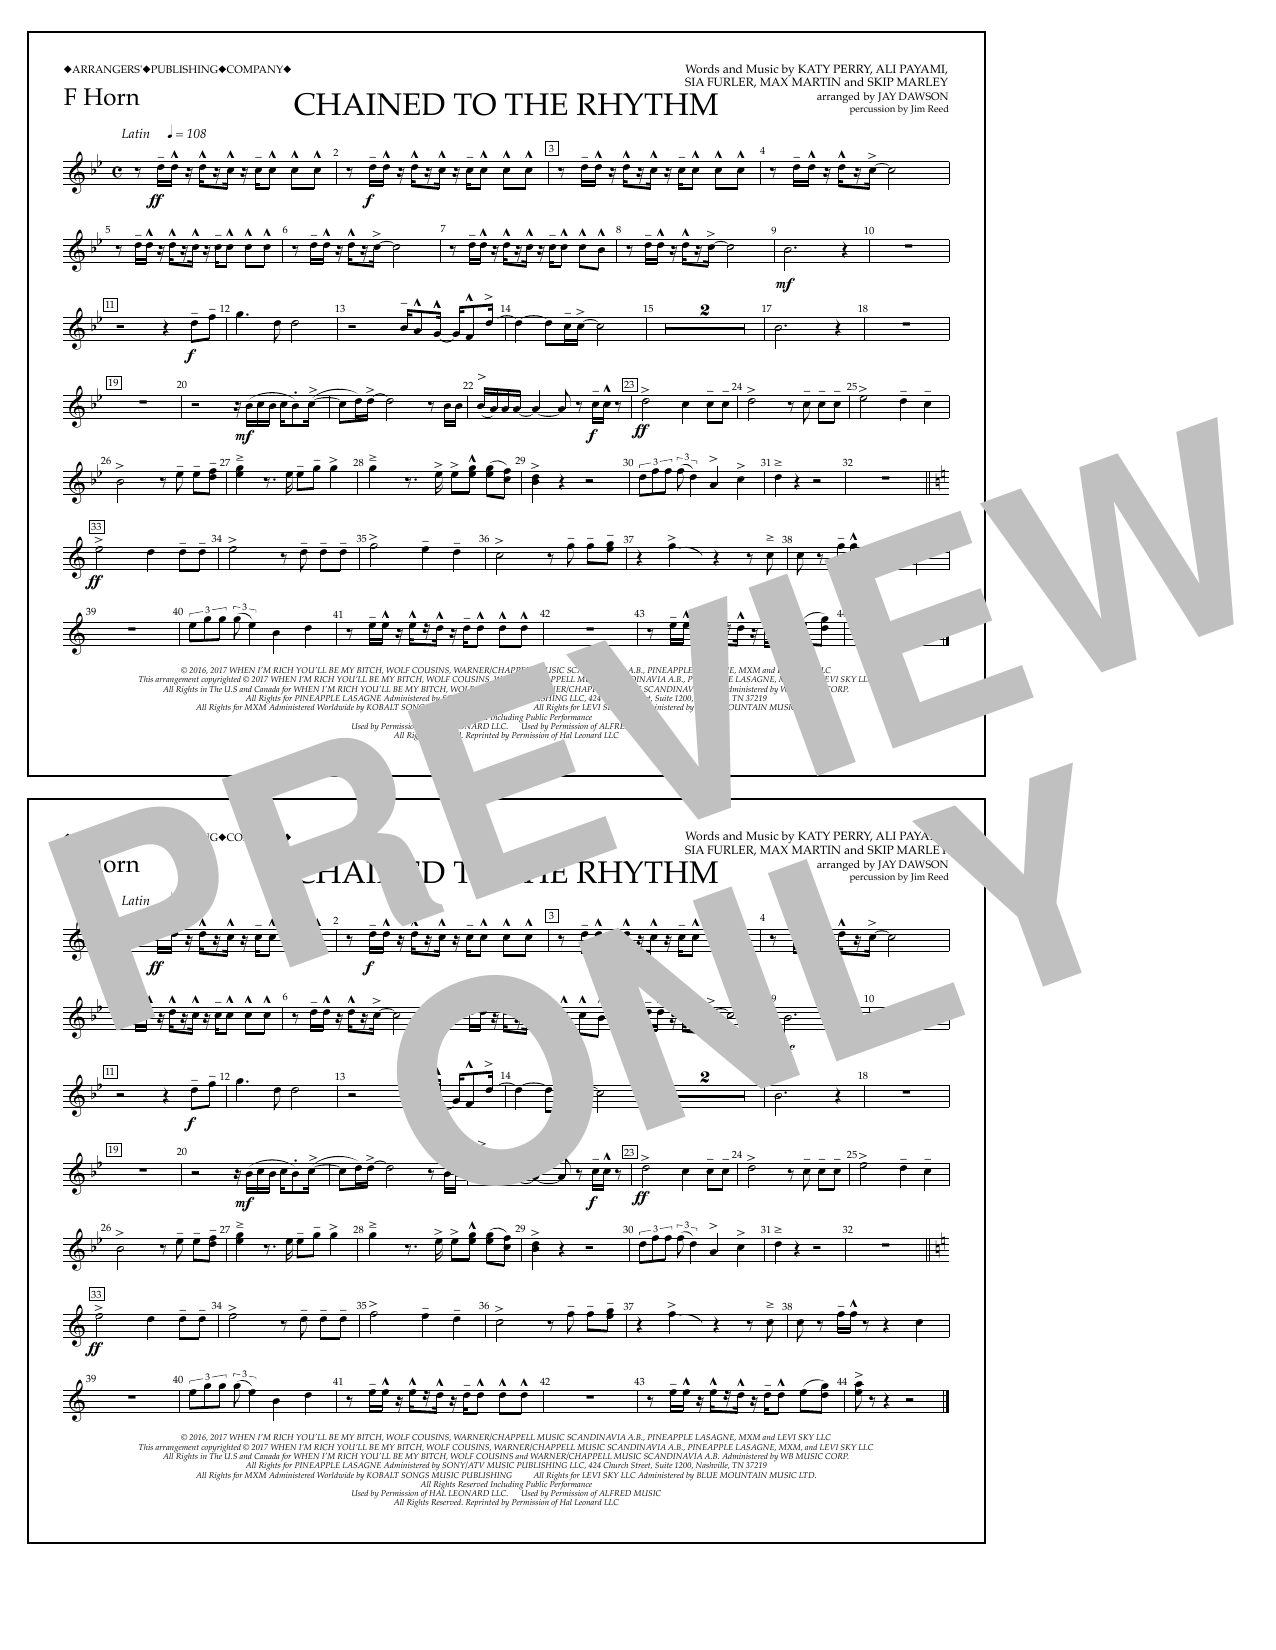 Chained to the Rhythm - F Horn Sheet Music